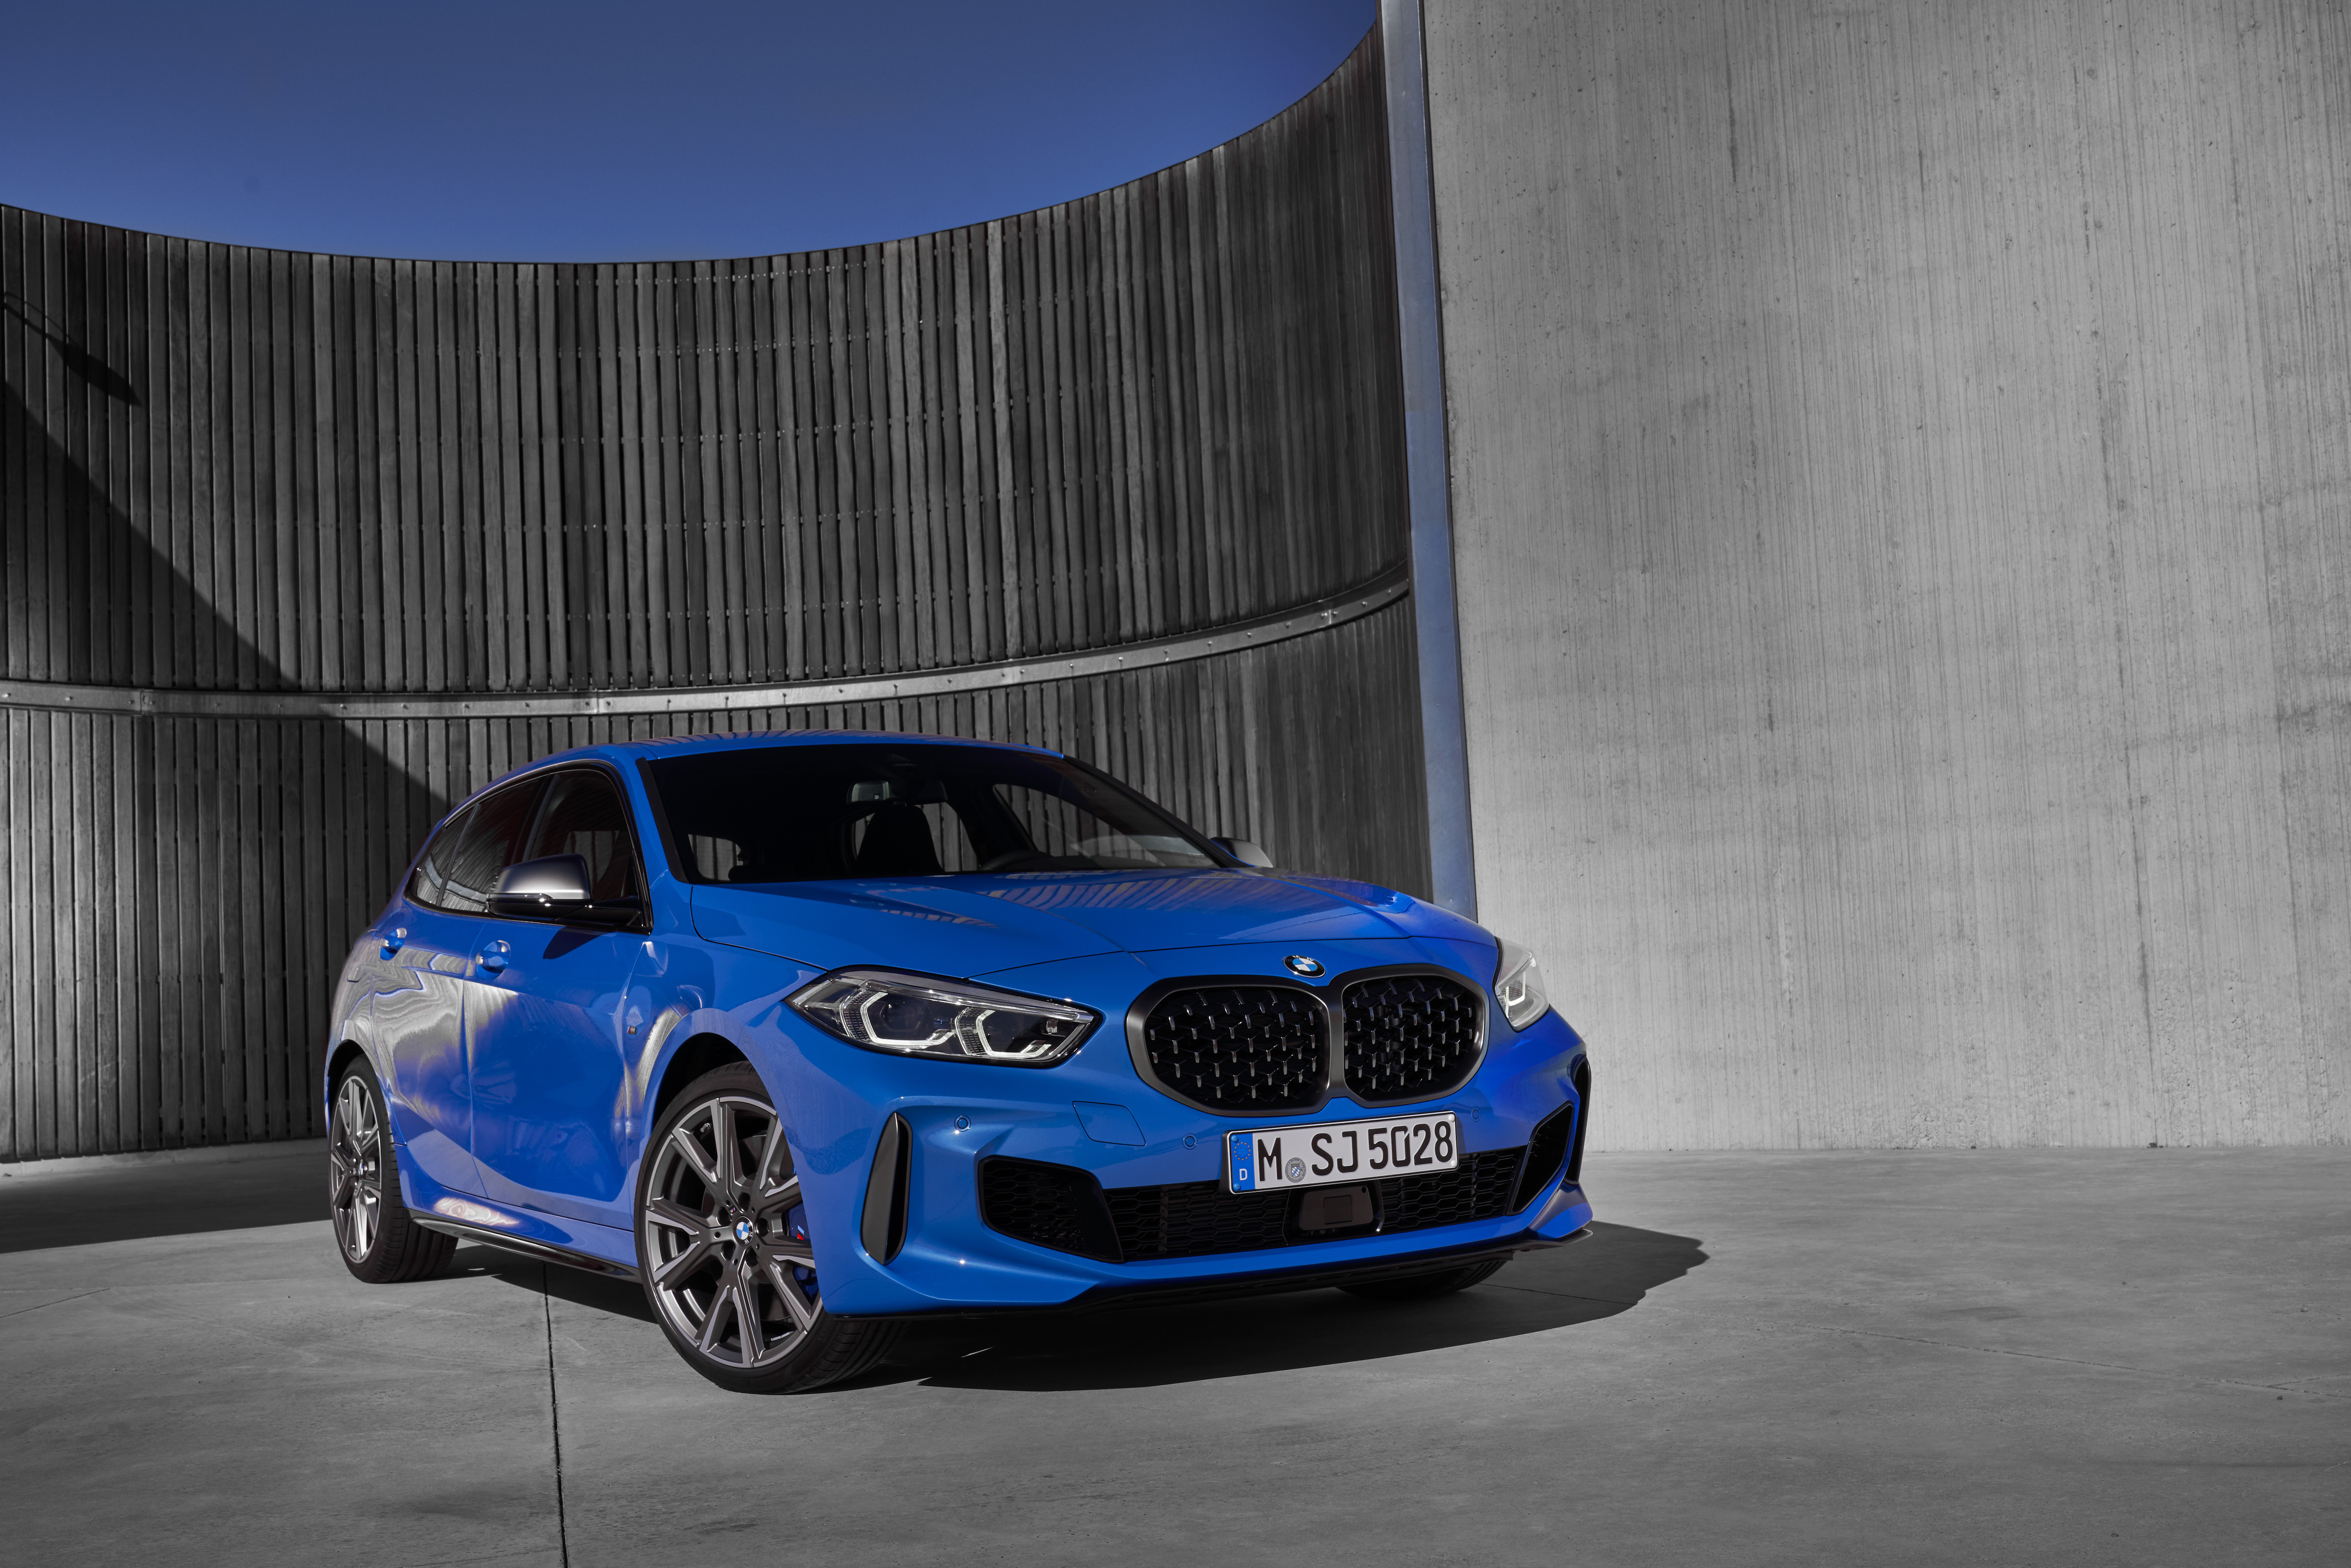 New Bmw 1 Series Faster And Techier With More Front Wheel